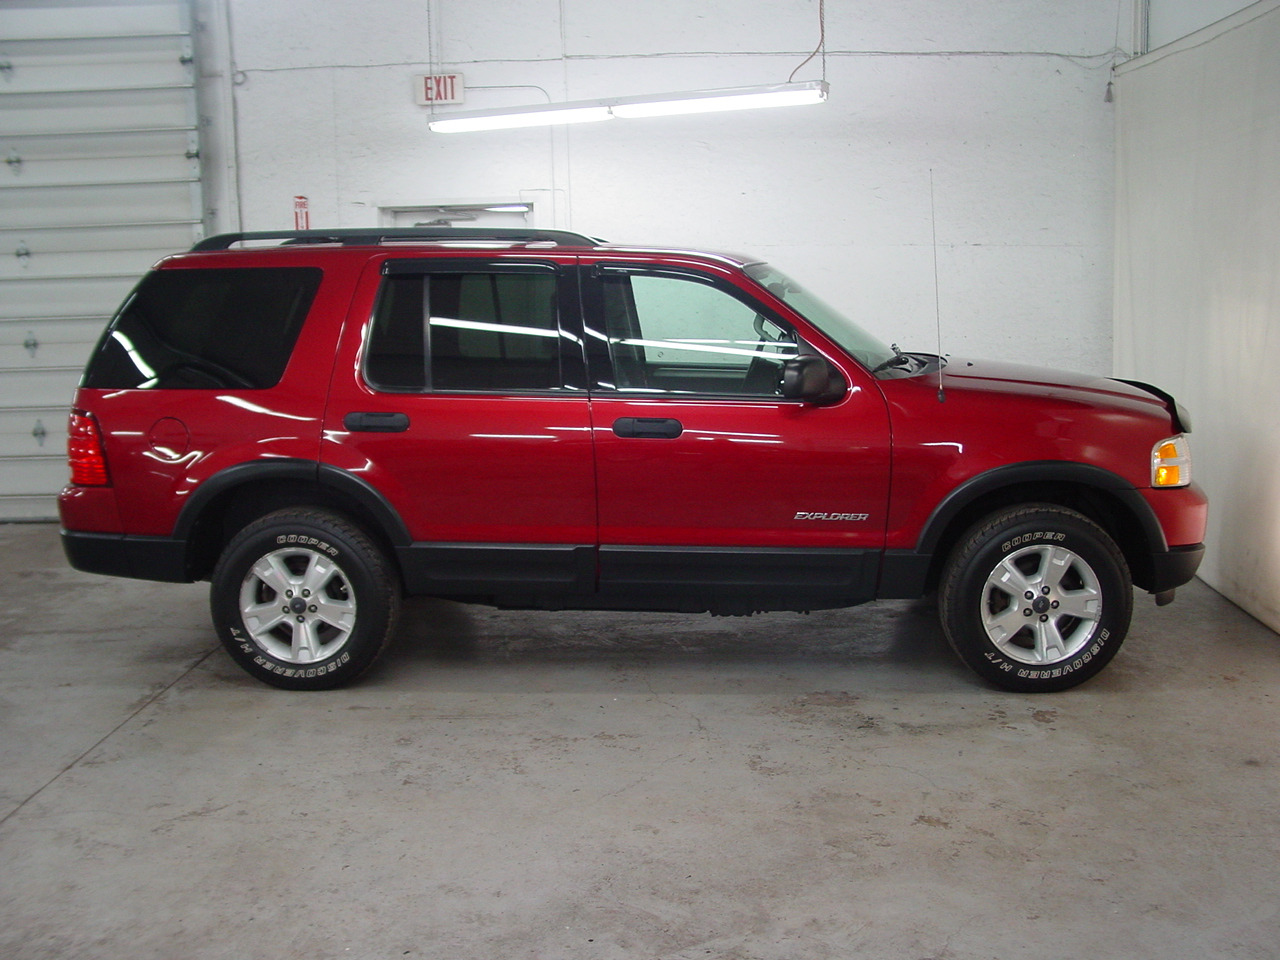 Ford Explorer Towing Camper >> 2004 Ford Explorer NBX - Biscayne Auto Sales | Pre-owned Dealership | Ontario, NY